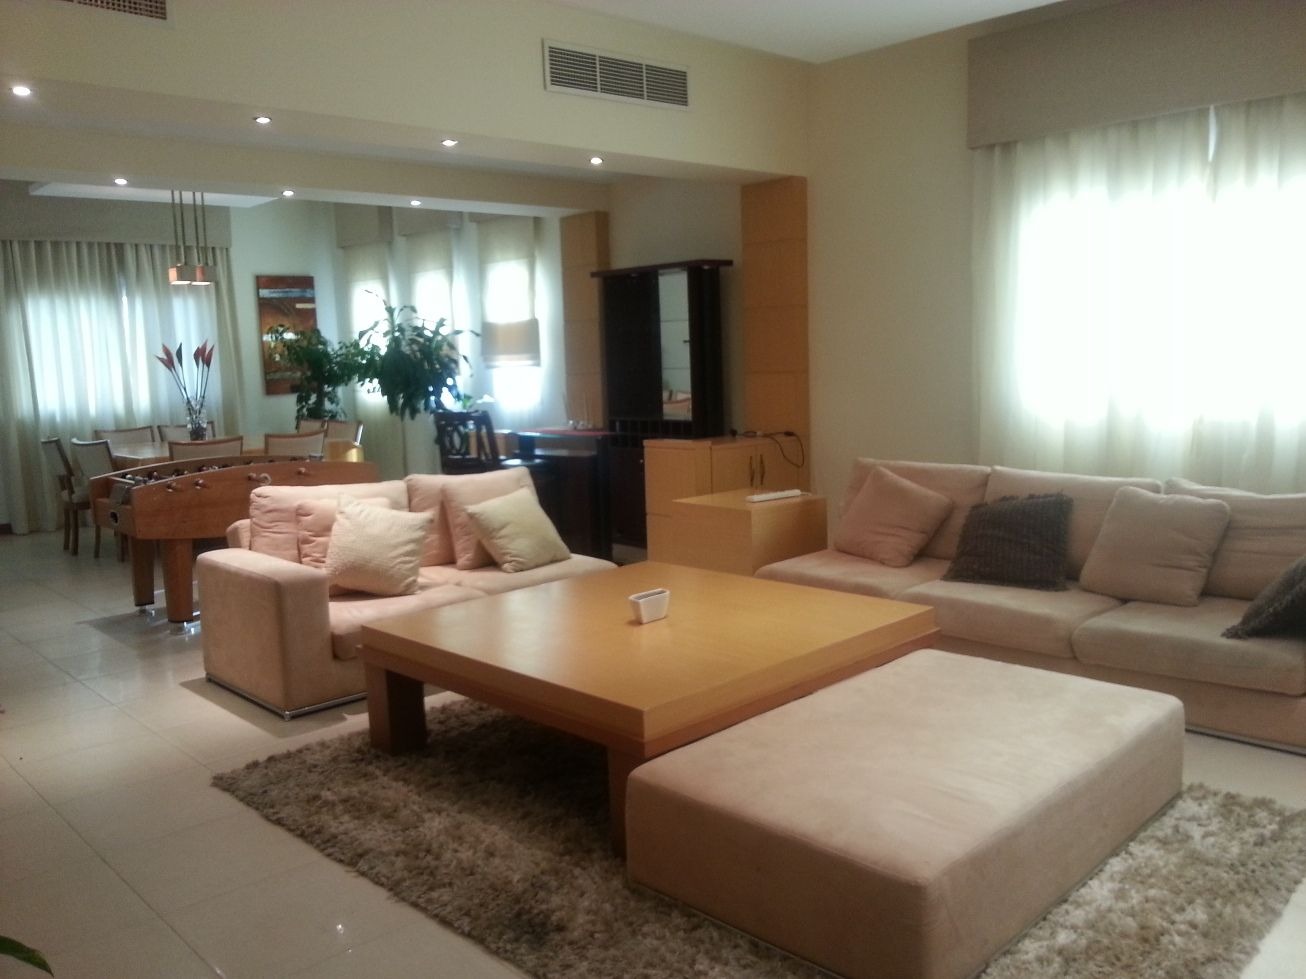 Luxurious 2 Bed Rooms Penthouse With Decent Furniture Fully Furnished Md2515823 Apartment For Rent In Juffair Al Manama Furnishings Furniture Home Decor